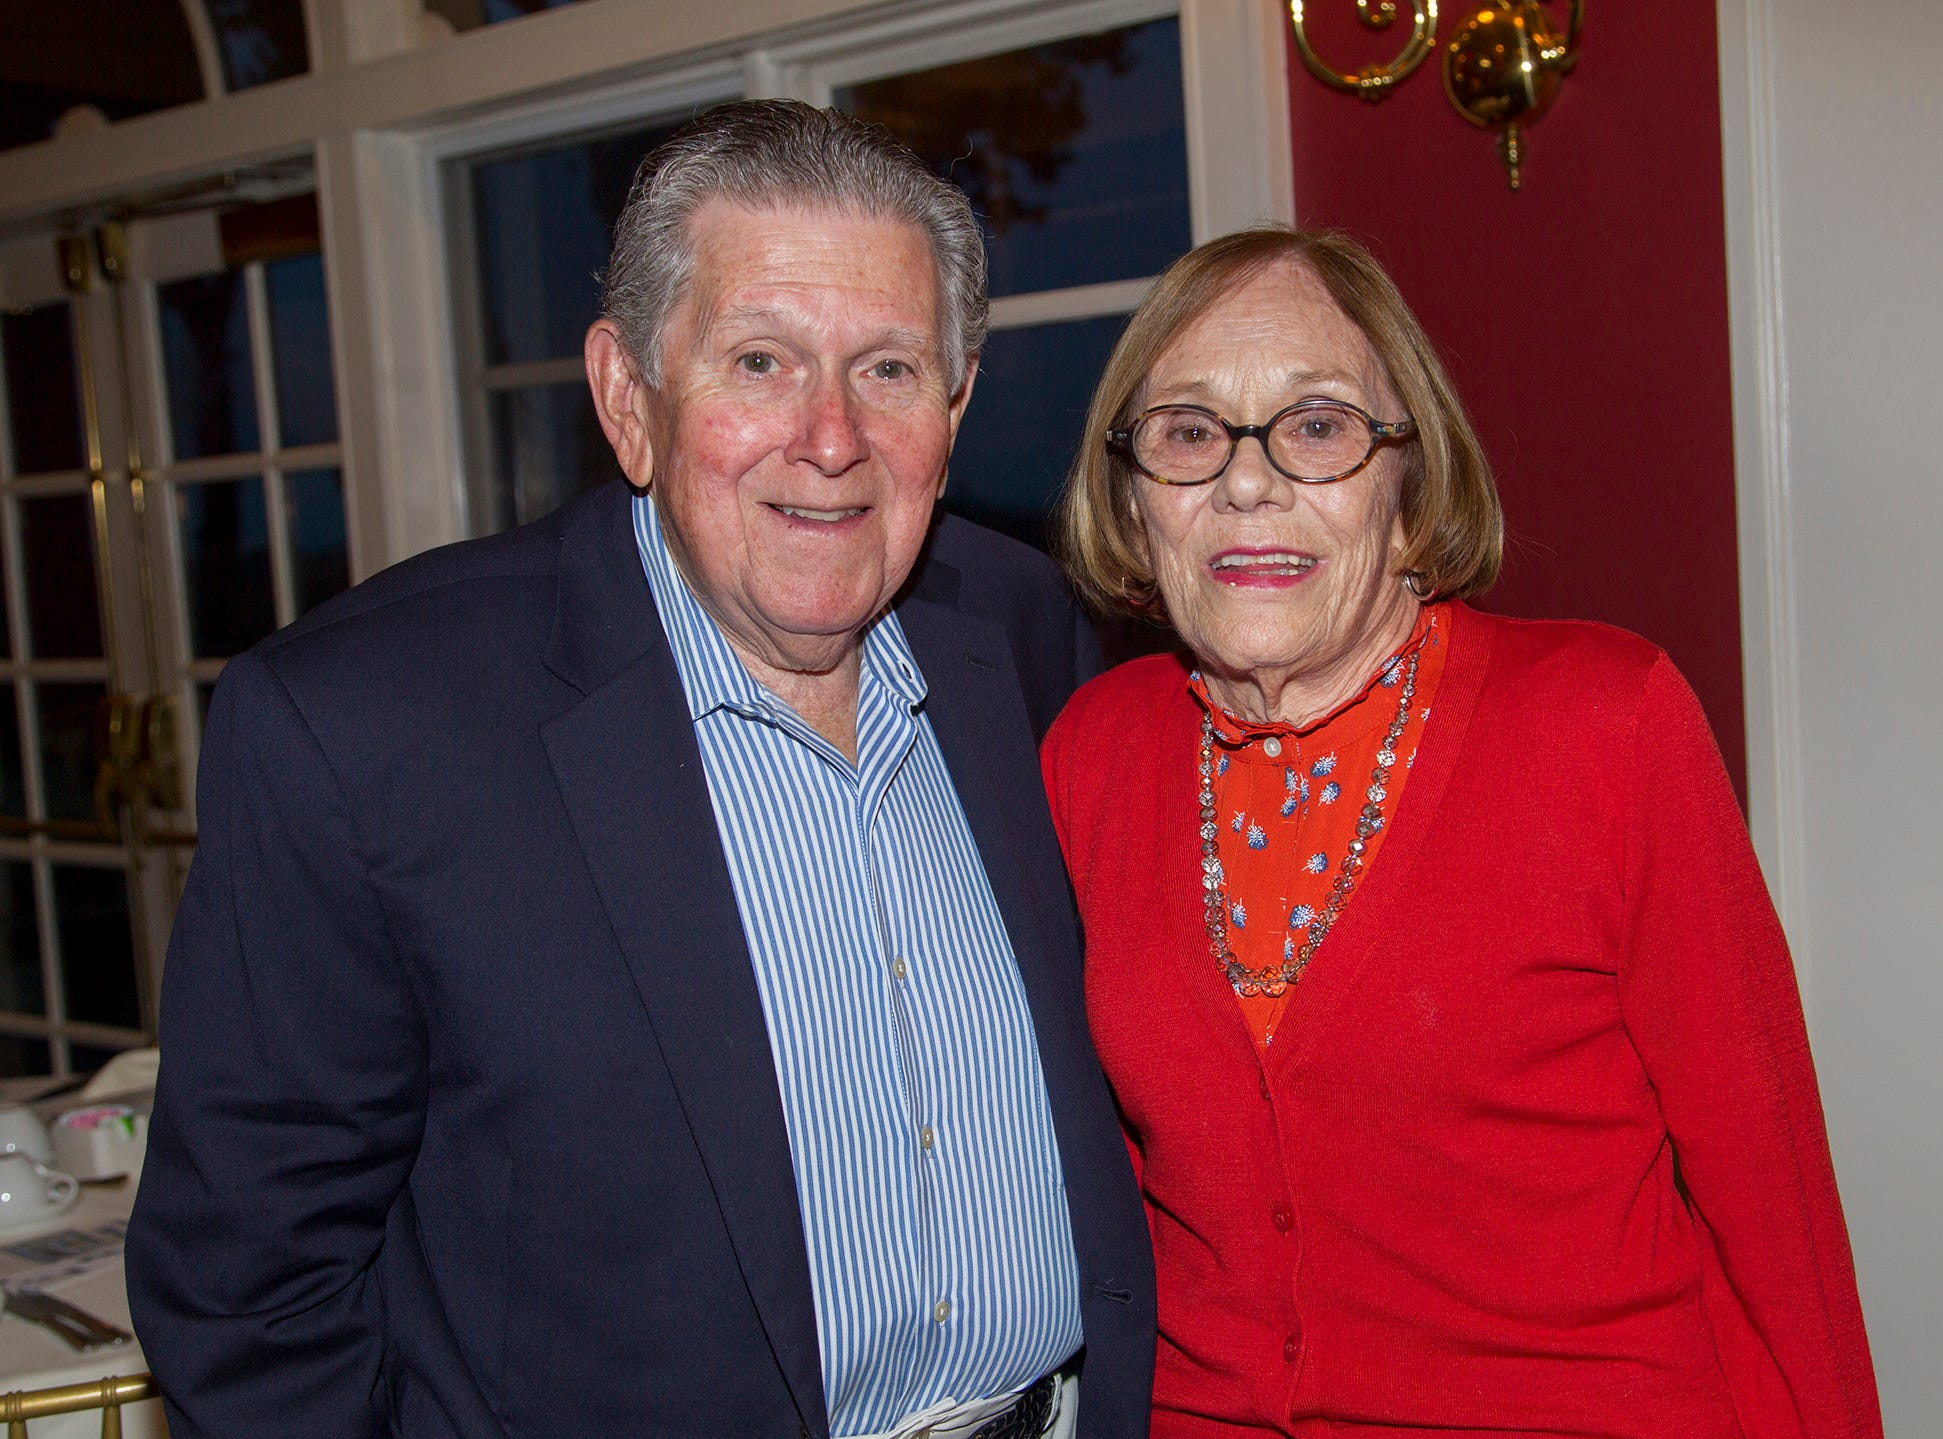 Bernie and Ann Marie Saccaro. Seventh annual AIR Express Golf Outing honoring Dr. Dante Implicito, M.D. for his service to Hackensack University Medical Center. 10/16/2018